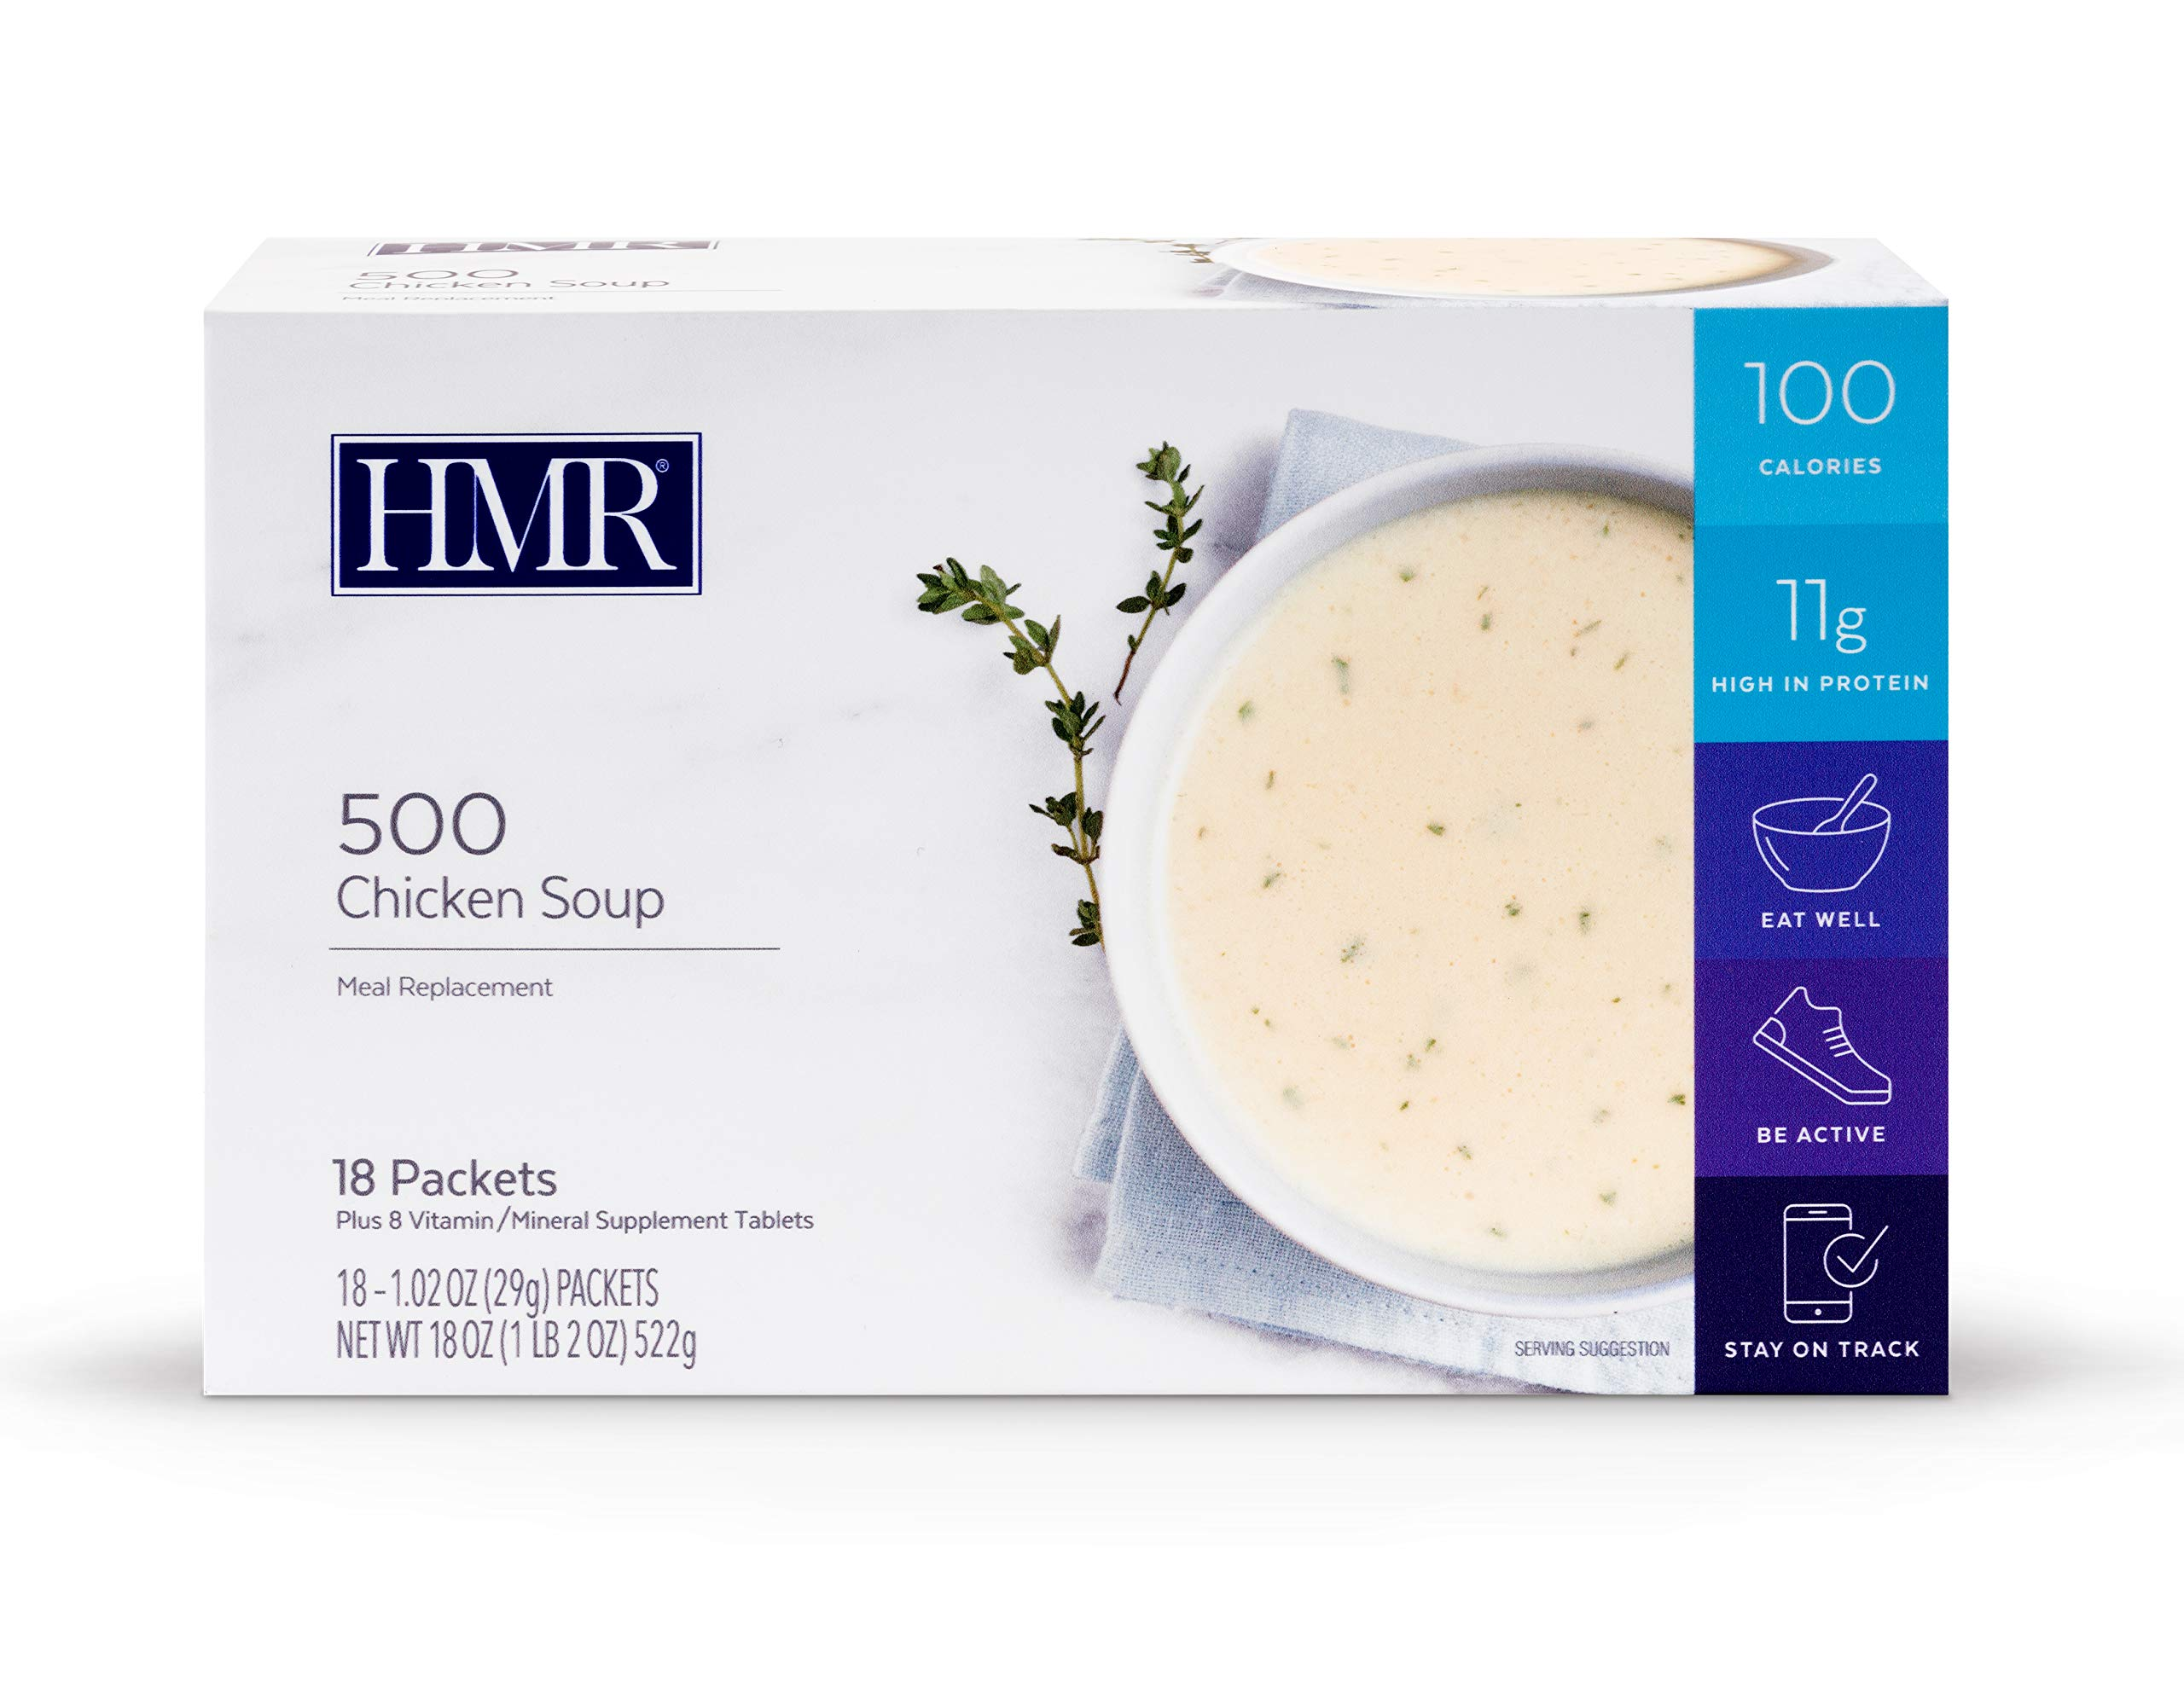 HMR 500 Chicken Soup, Meal Replacement, 100 Calories, Box of 18 Servings by HMR